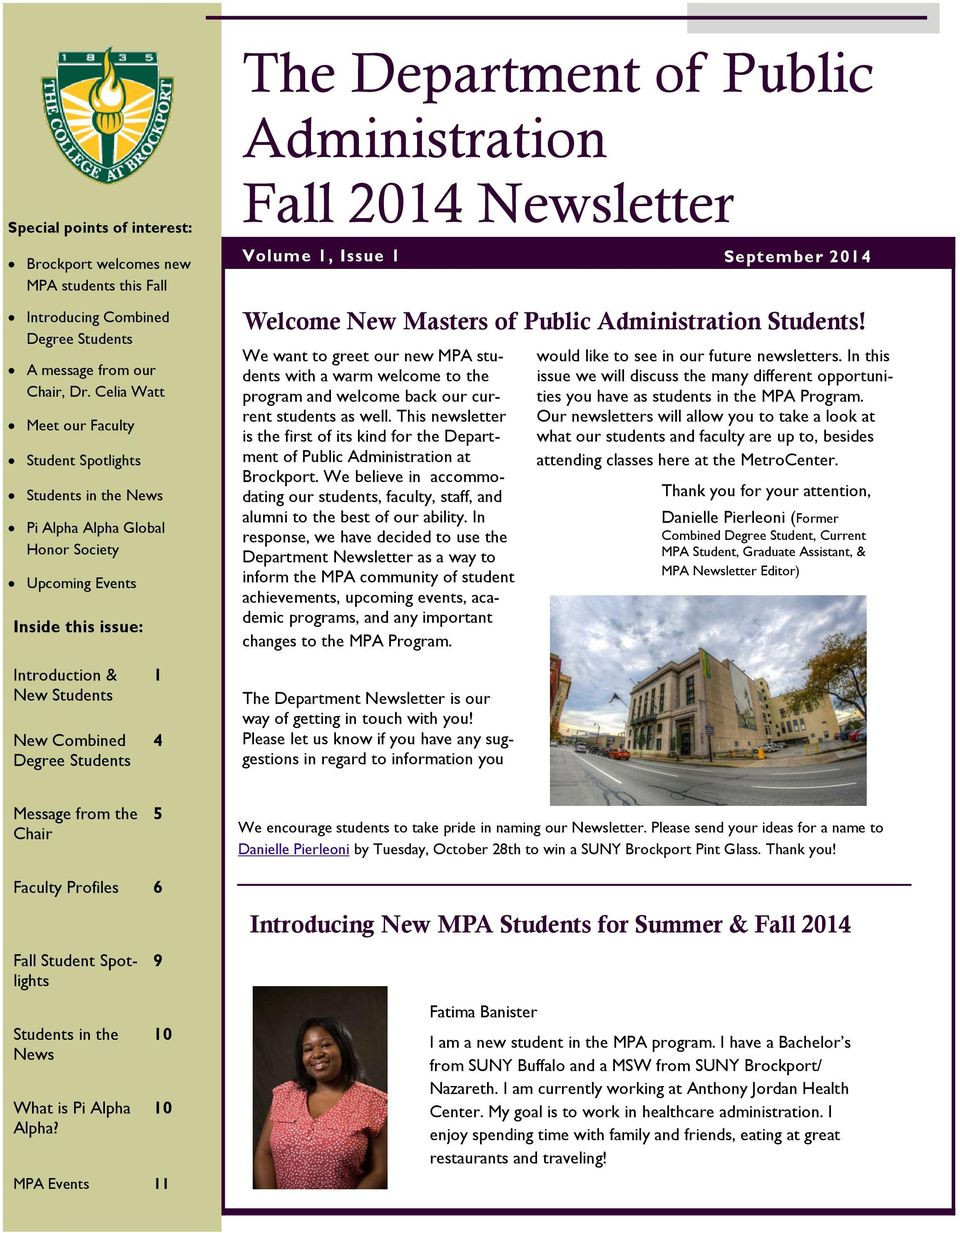 Volume 1, Issue 1 Welcome New Masters of Public Administration Students! We want to greet our new MPA students with a warm welcome to the program and welcome back our current students as well.